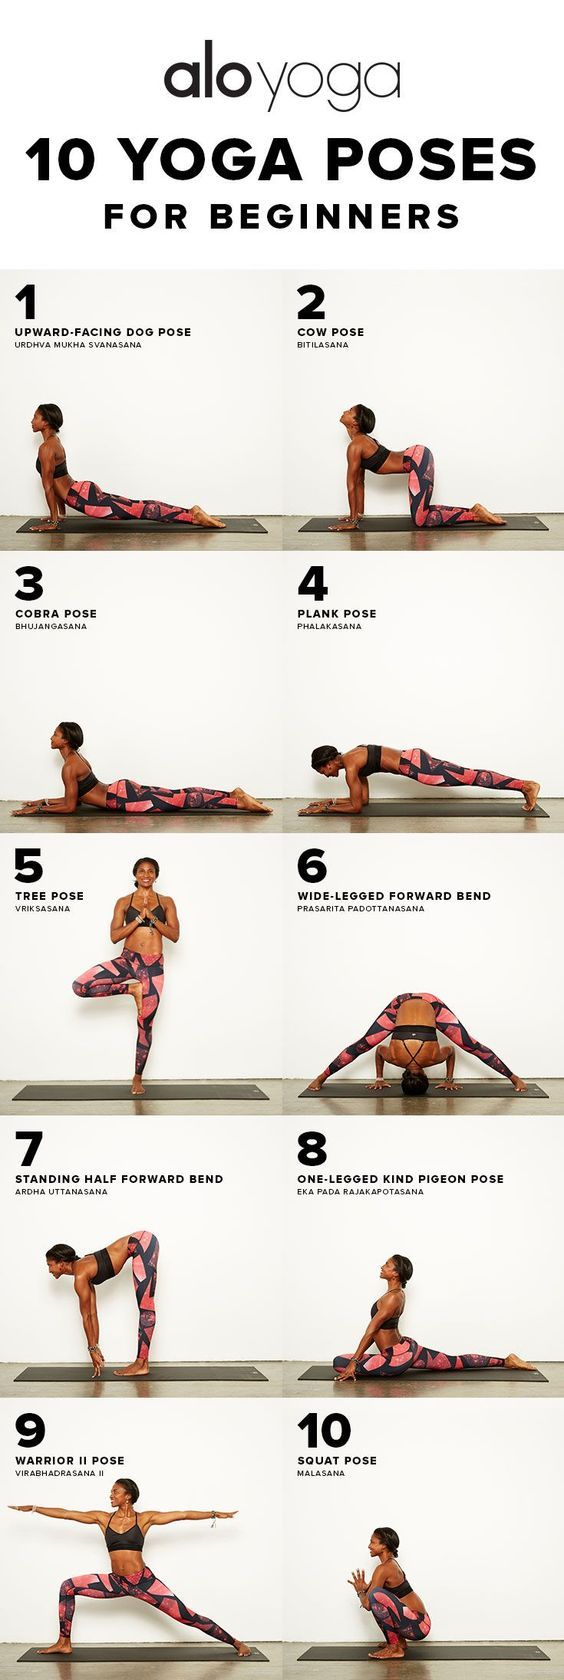 DownDog Yoga Poses for Fun & Fitness: 10 Yoga Poses for Beginners. From the Downdog Diary Yoga Blog found exclusively at DownDog Boutique